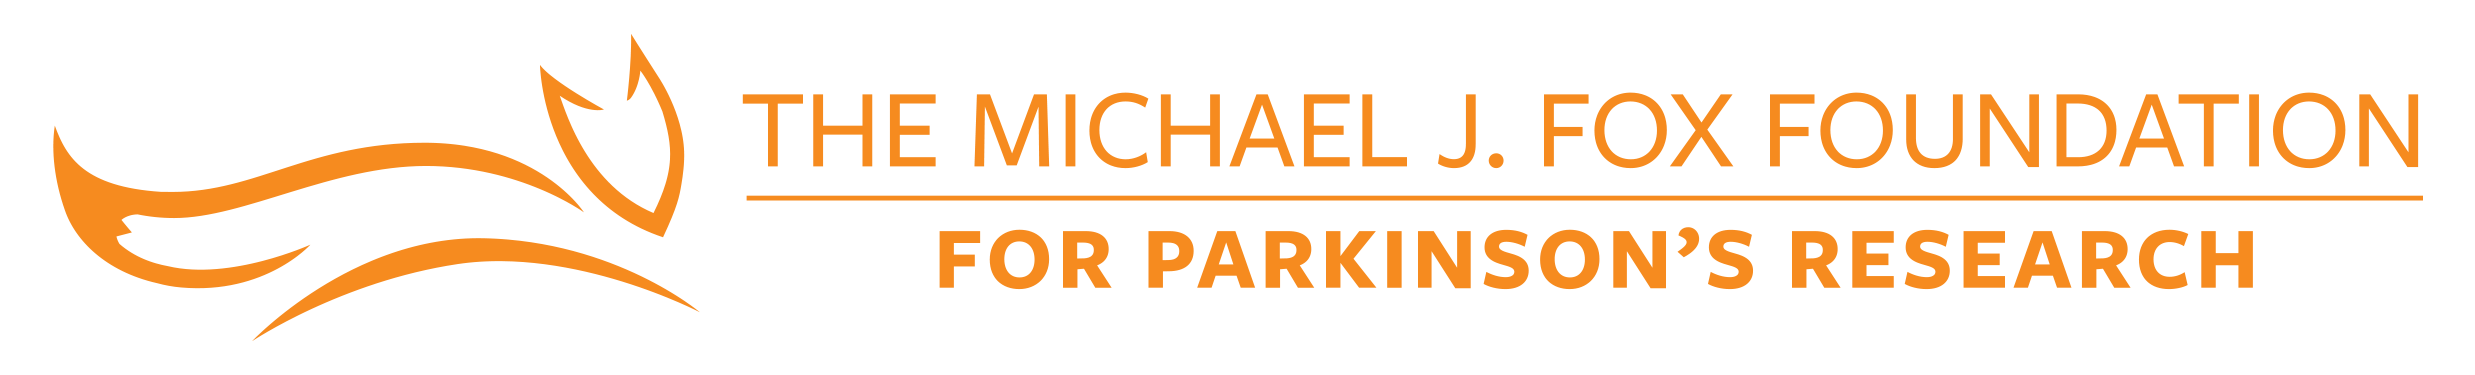 The Michael J. Fox Foundation logo